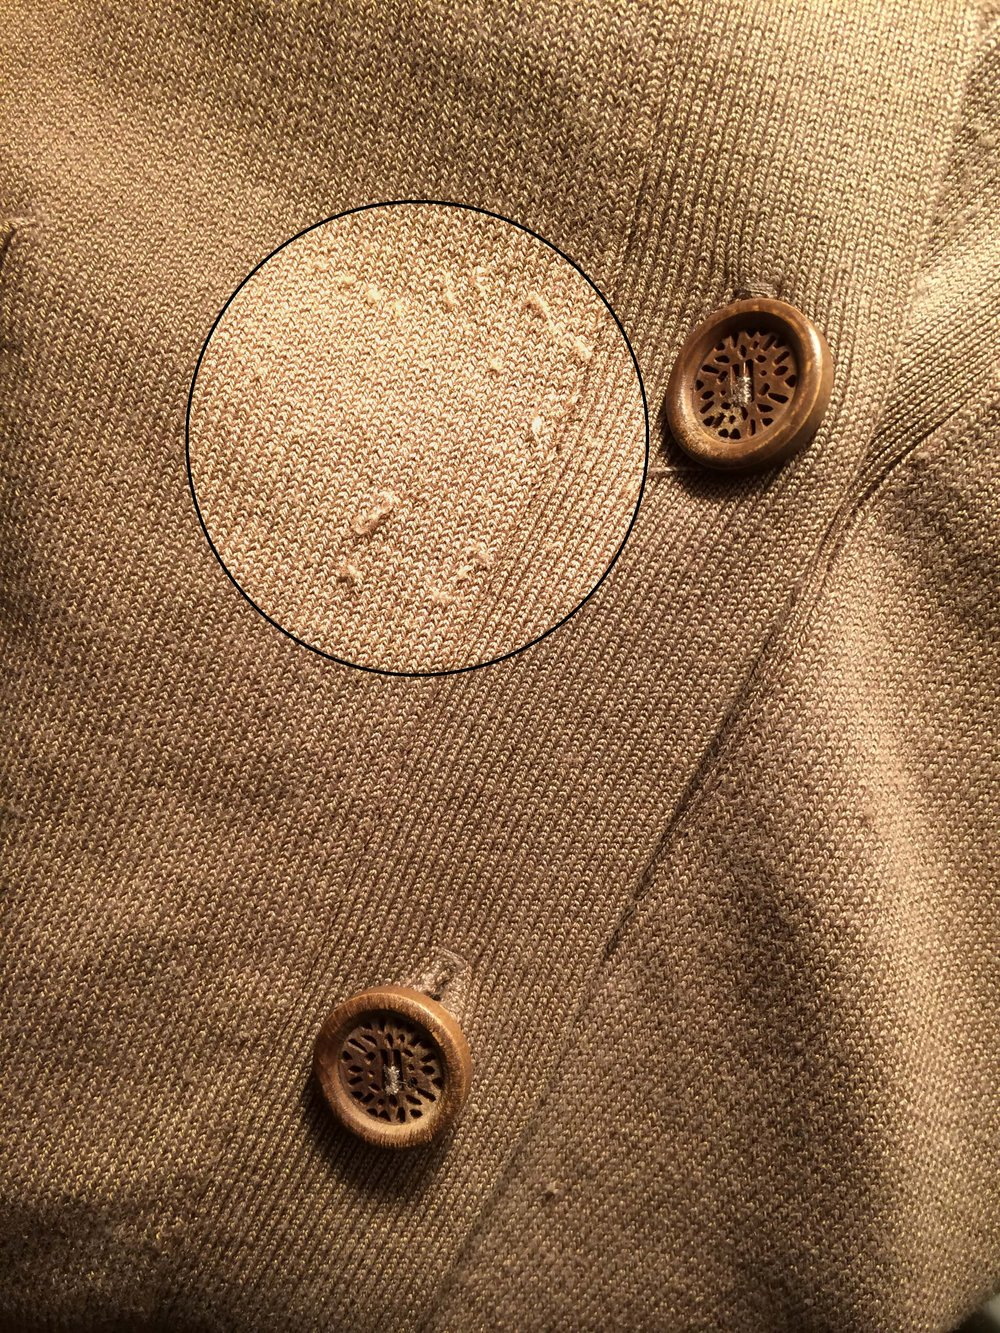 Ripping my favorite cardigan made me realize my attachment to this item.